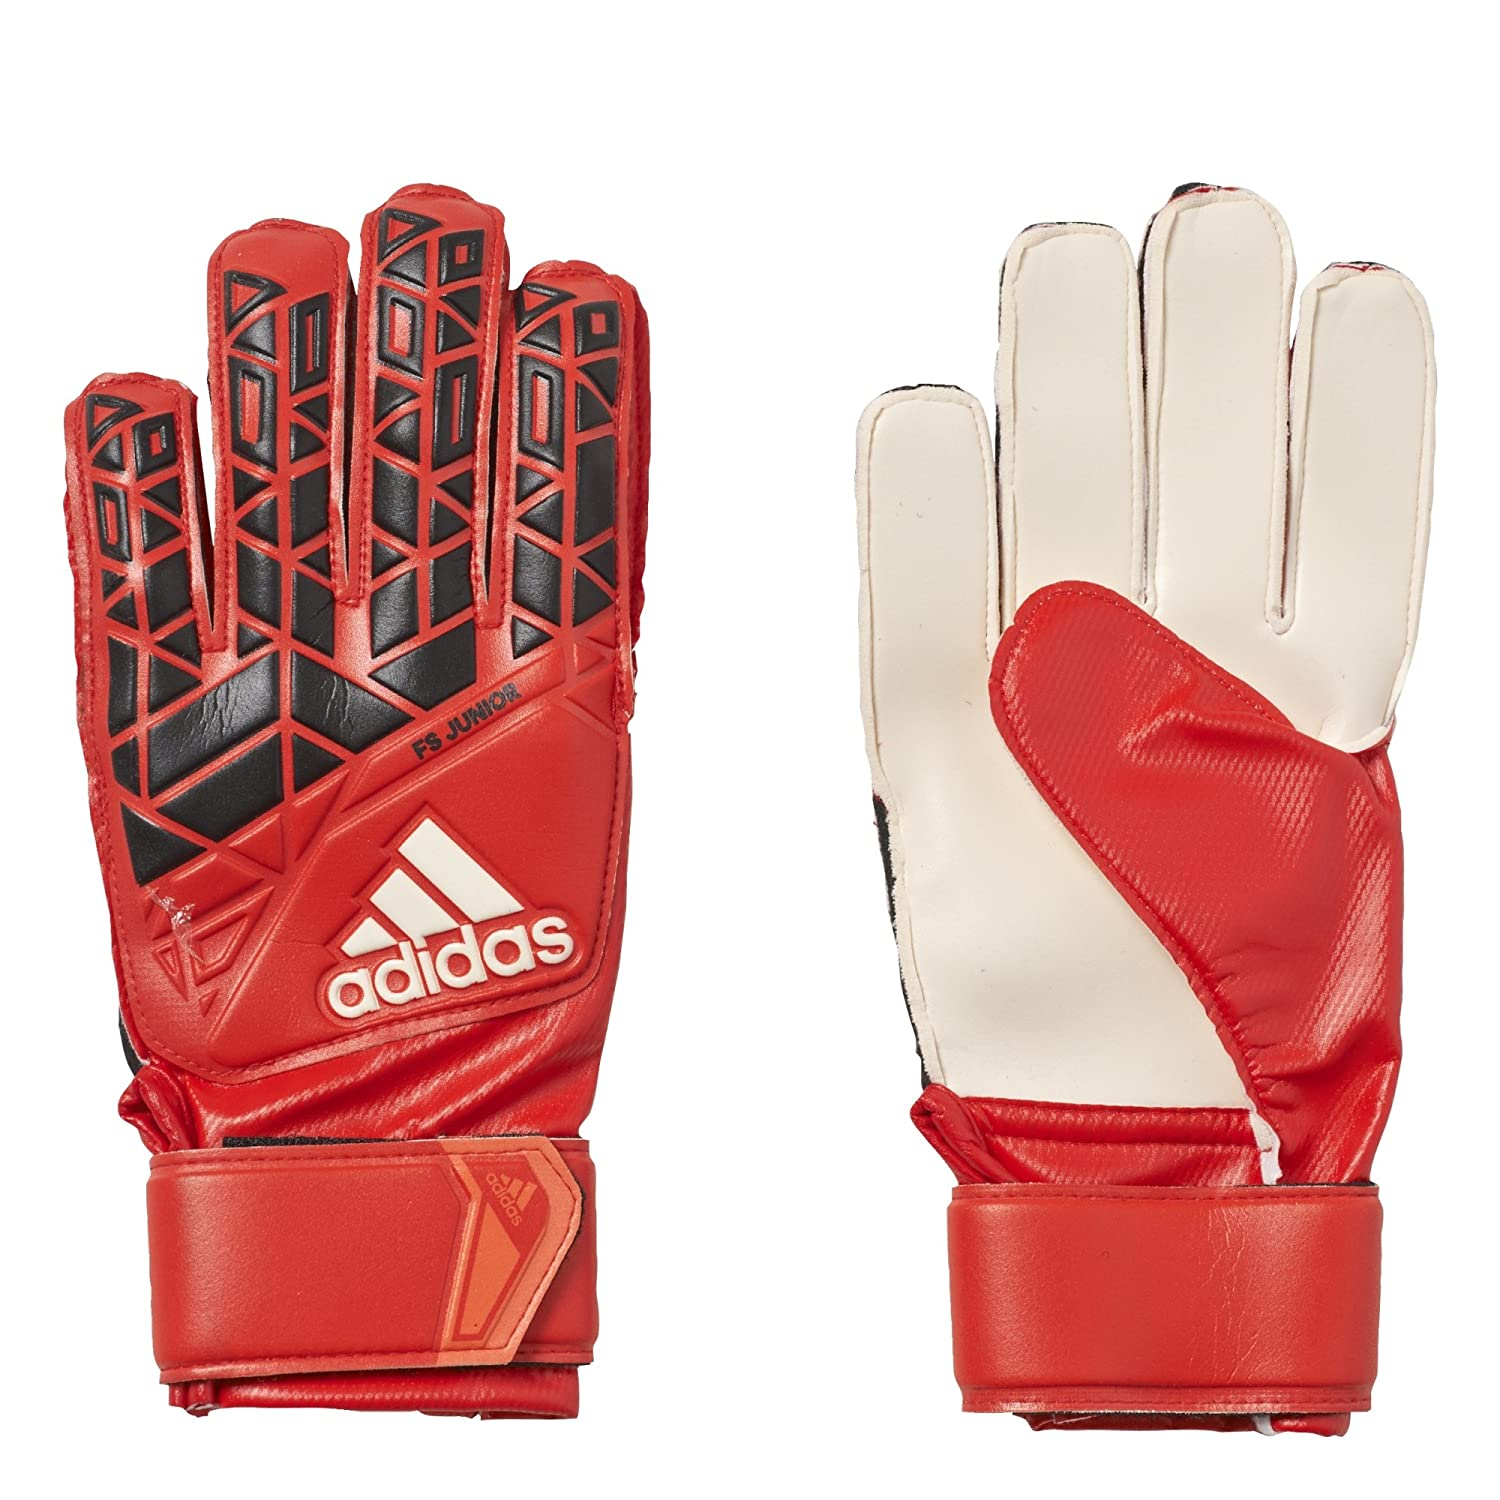 adidas Children's Ace Finger Save Goalkeeping Gloves